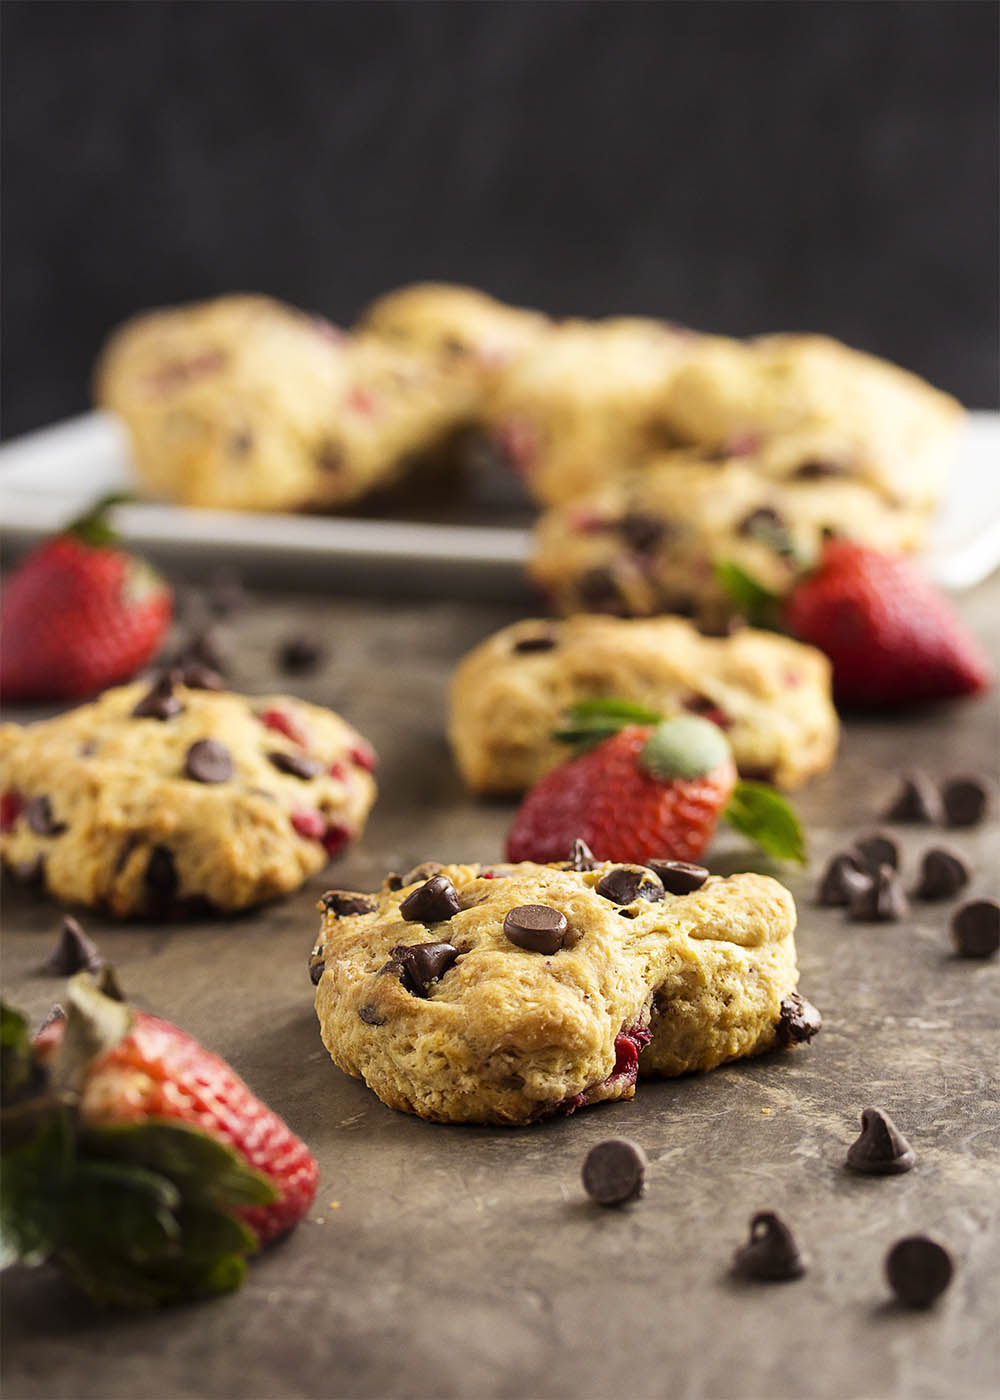 A heart shaped strawberry scone topped with chocolate chips on a table with more scones in the background.